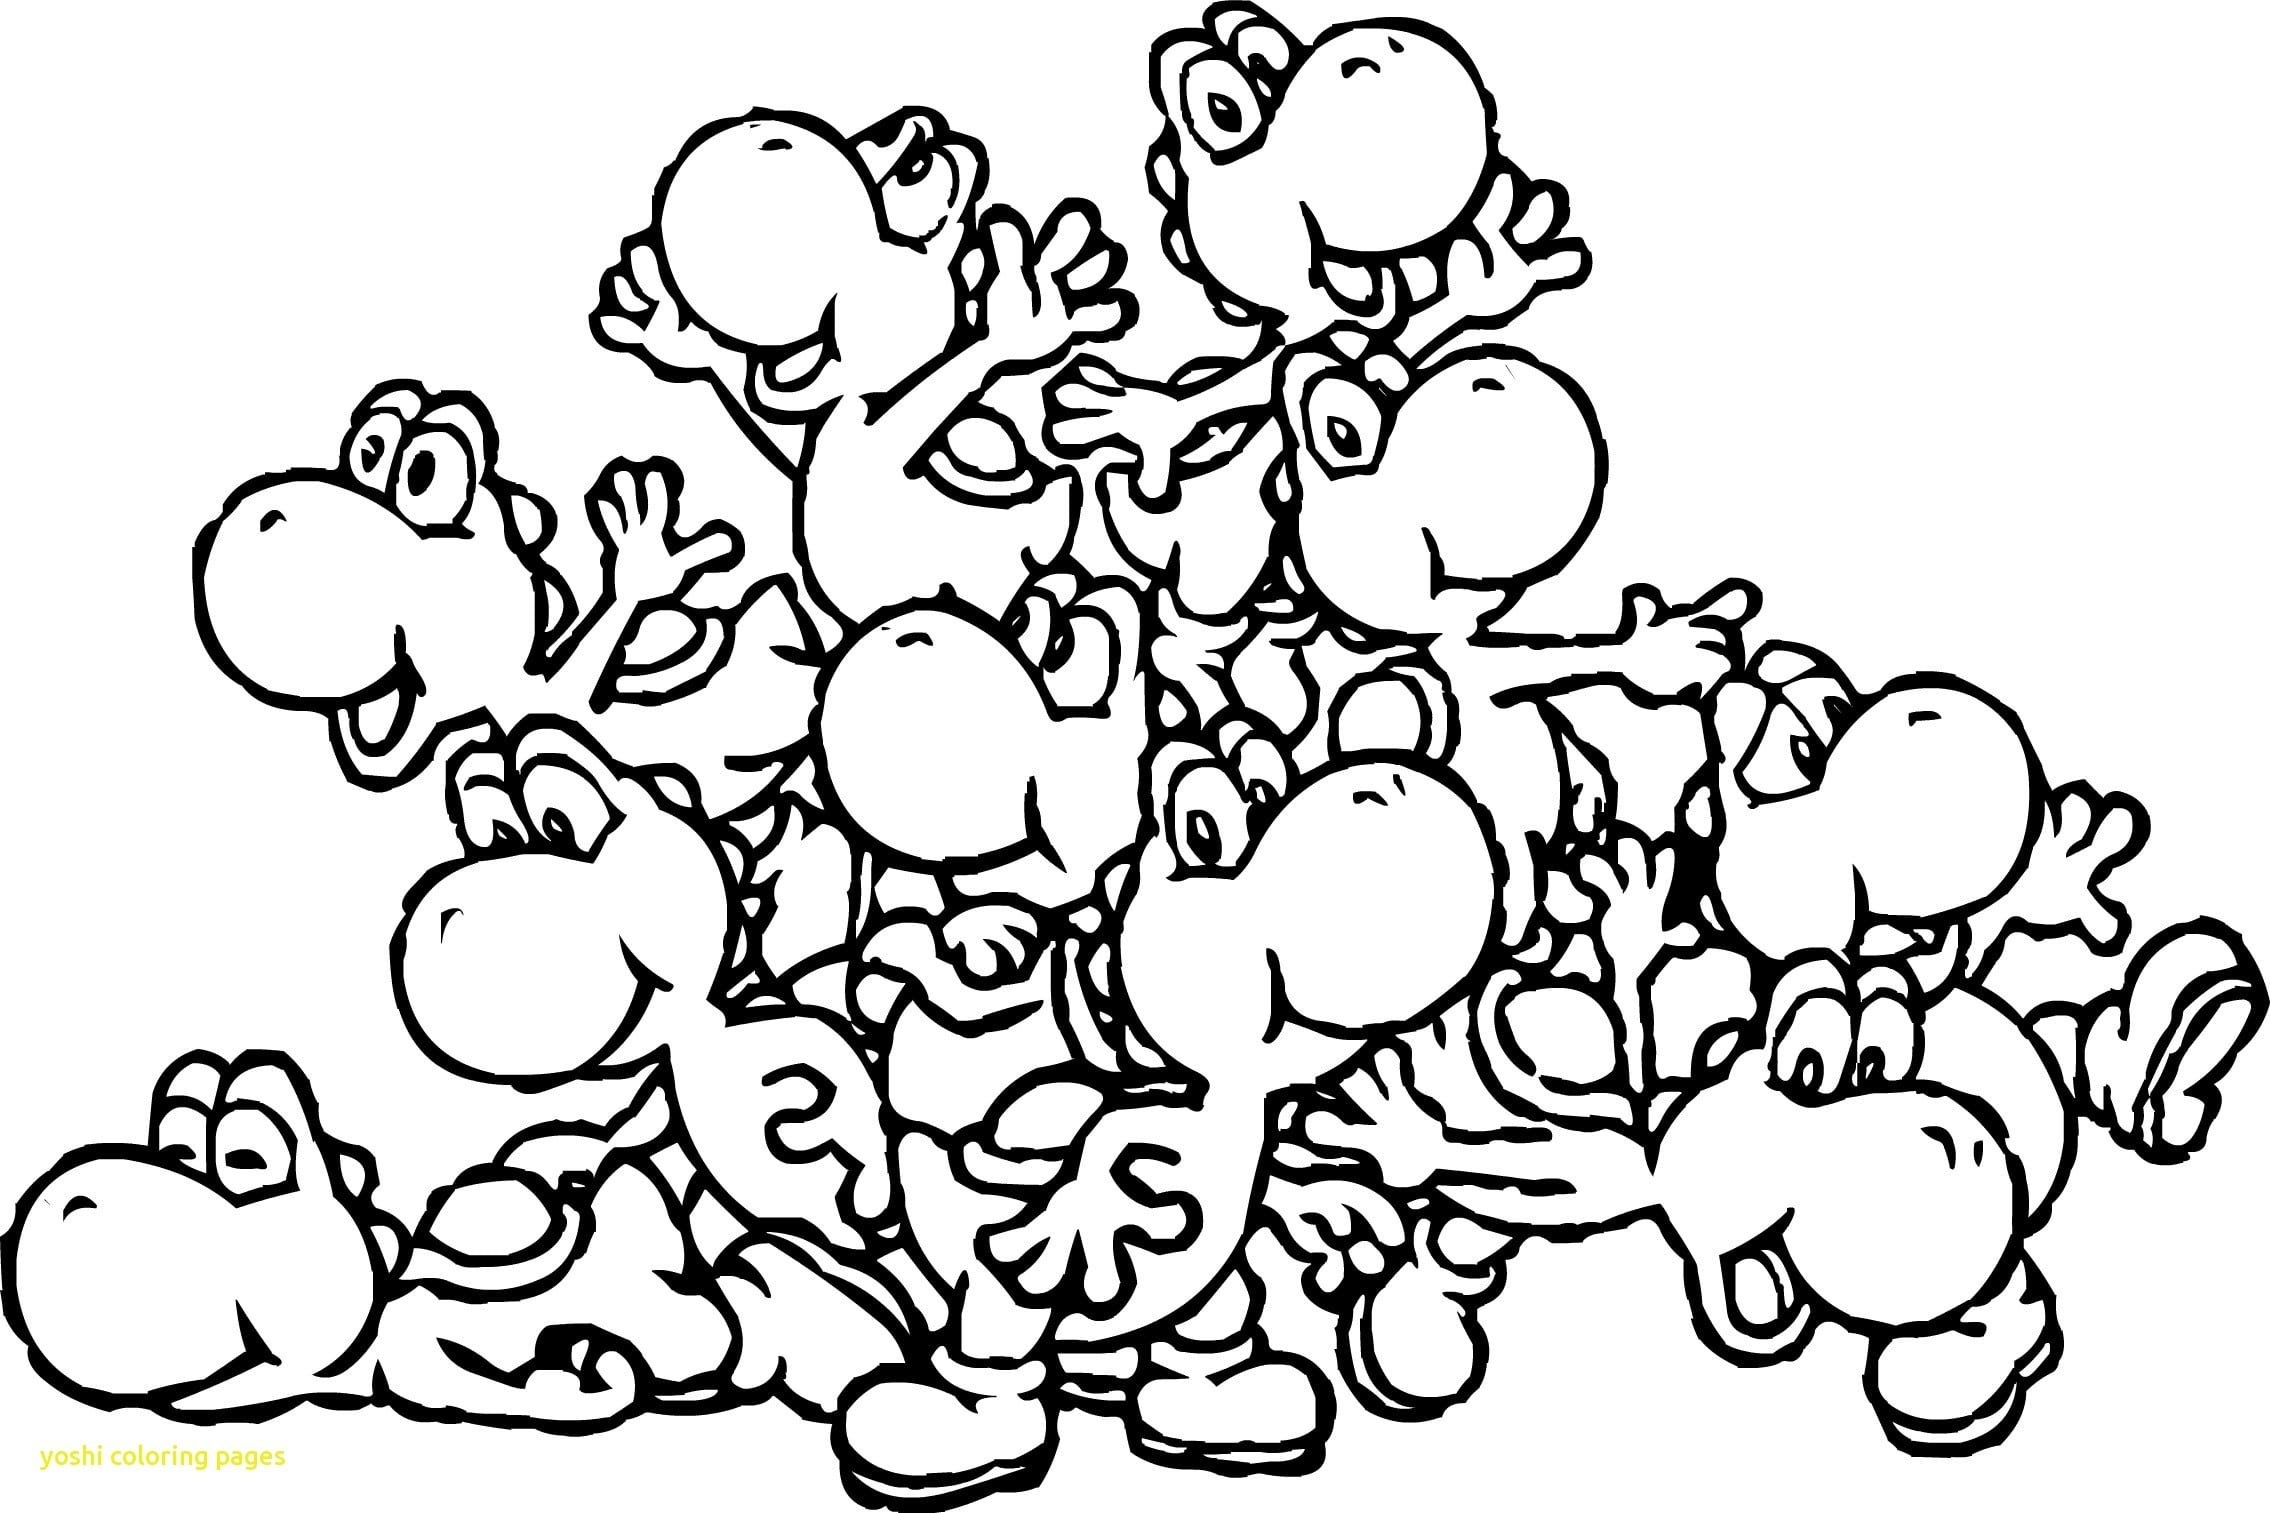 Yoshi Coloring Pages Isolution Me Throughout